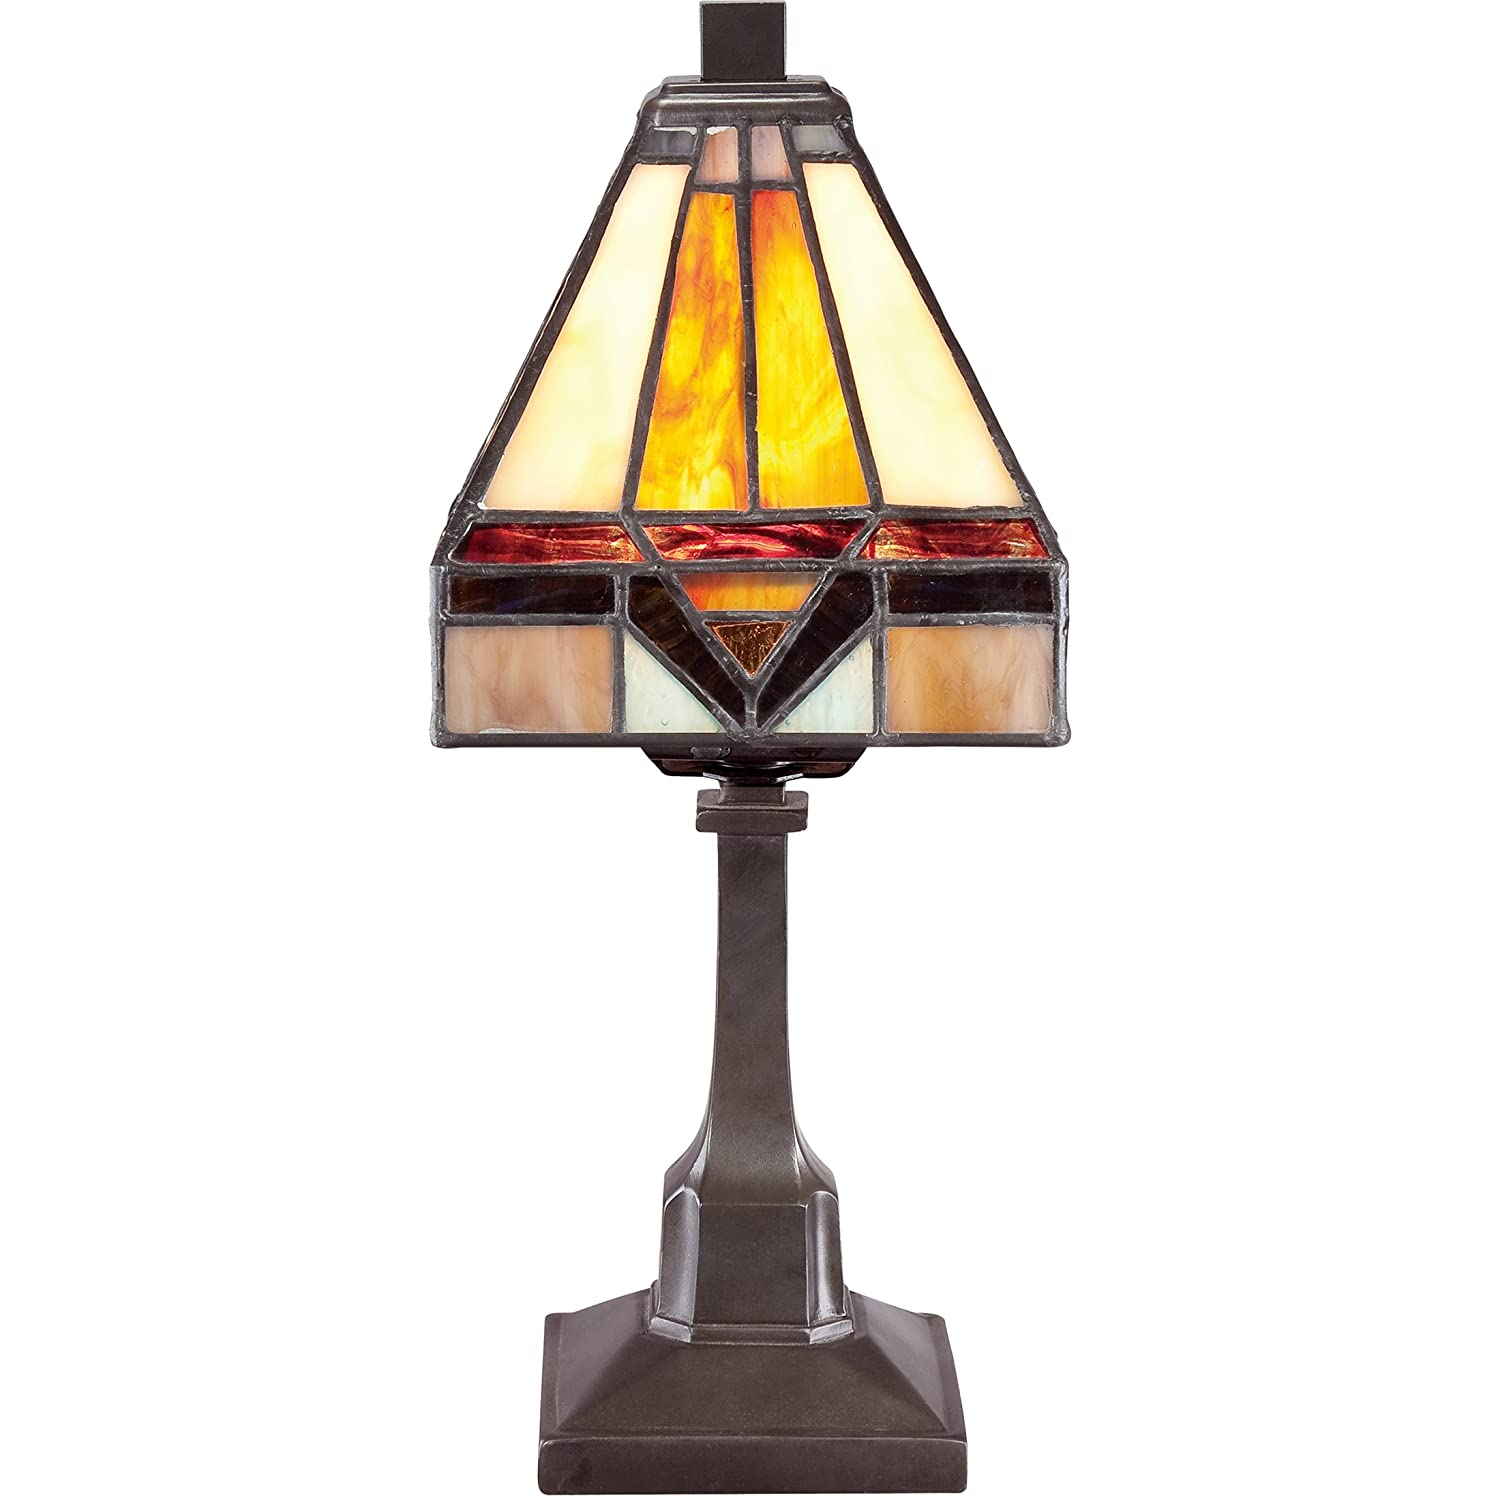 Quoizel One Tf1021tvb 1 Light Tiffany Table Lamp In Vintage Bronze